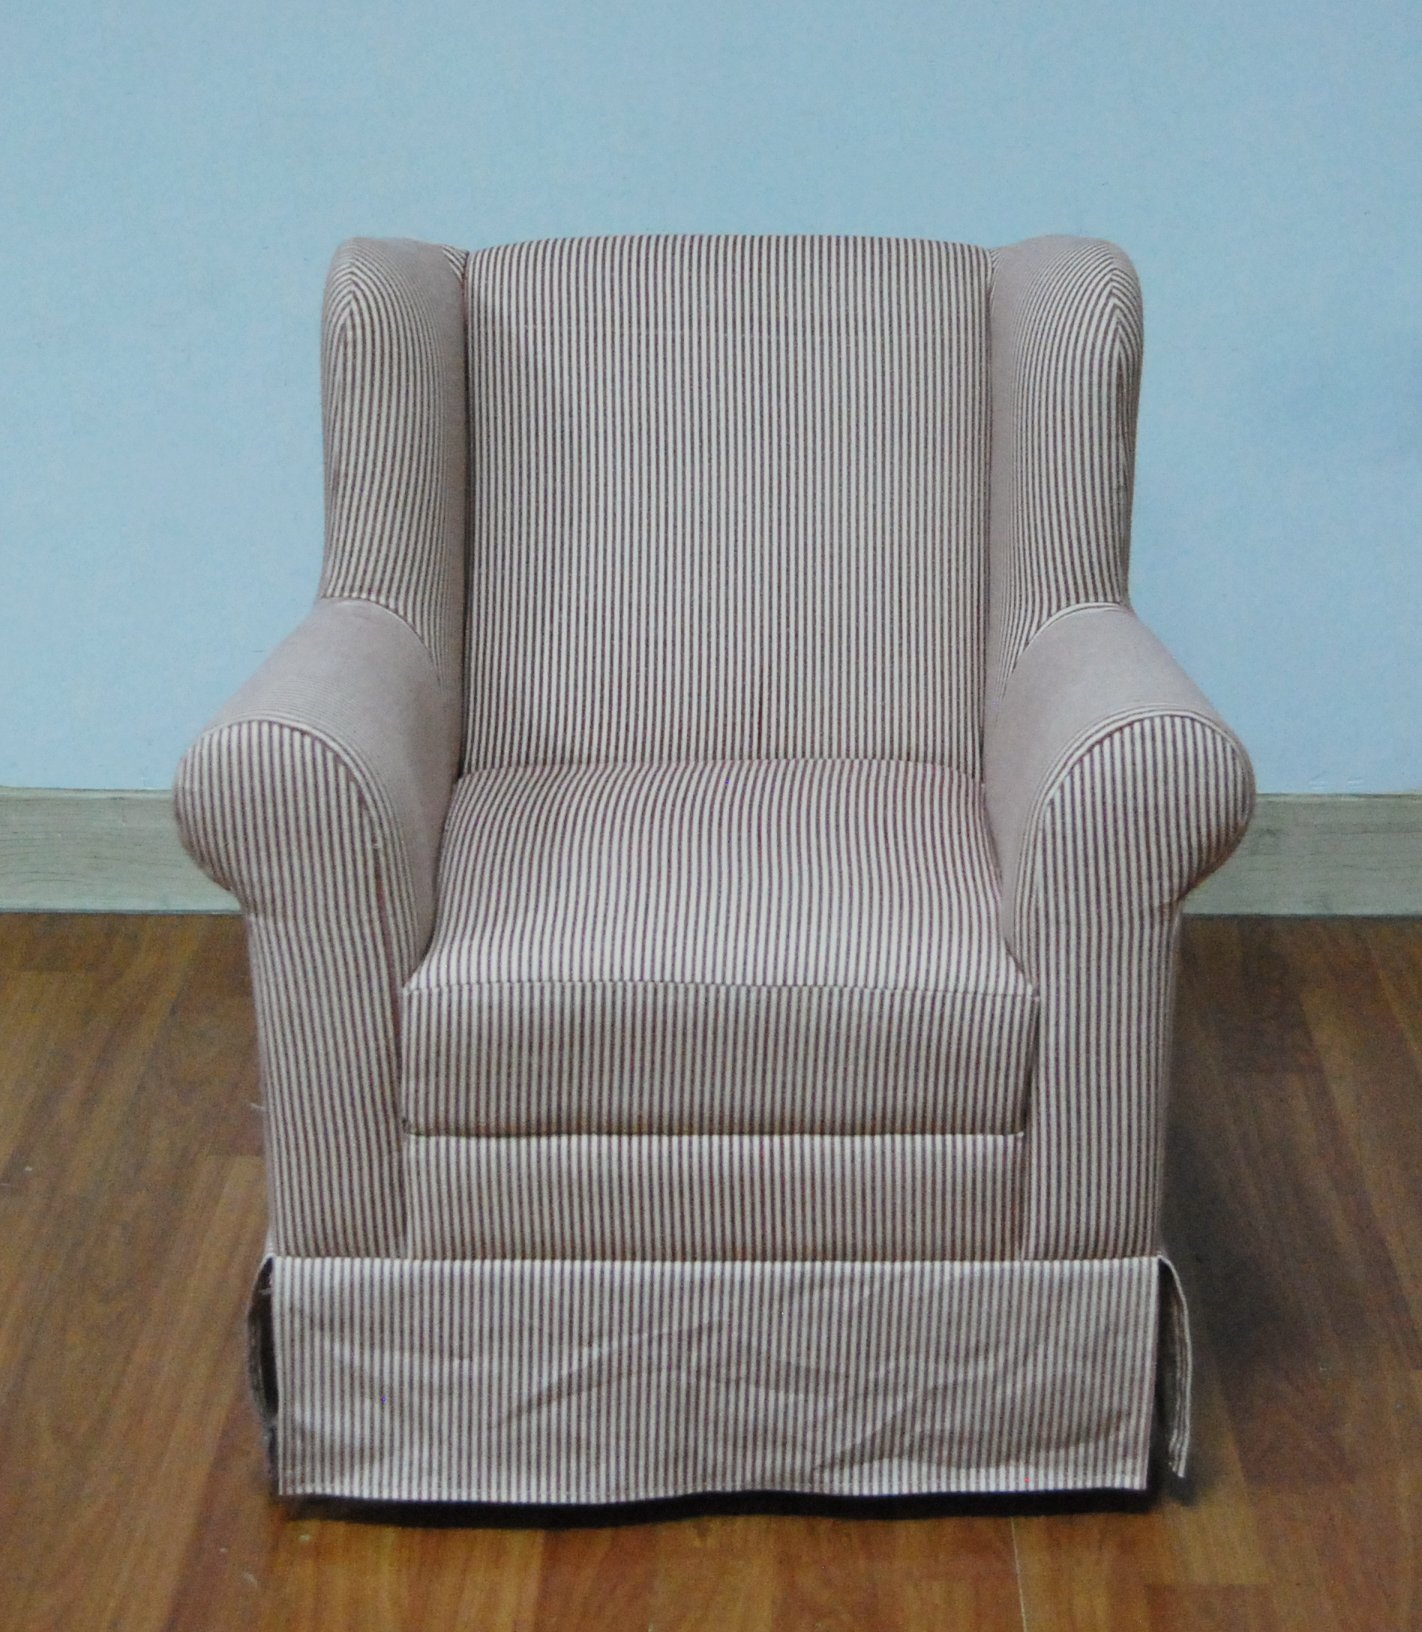 4D Concepts K3837-A287 Boys Wingback Chair with Red Ticking